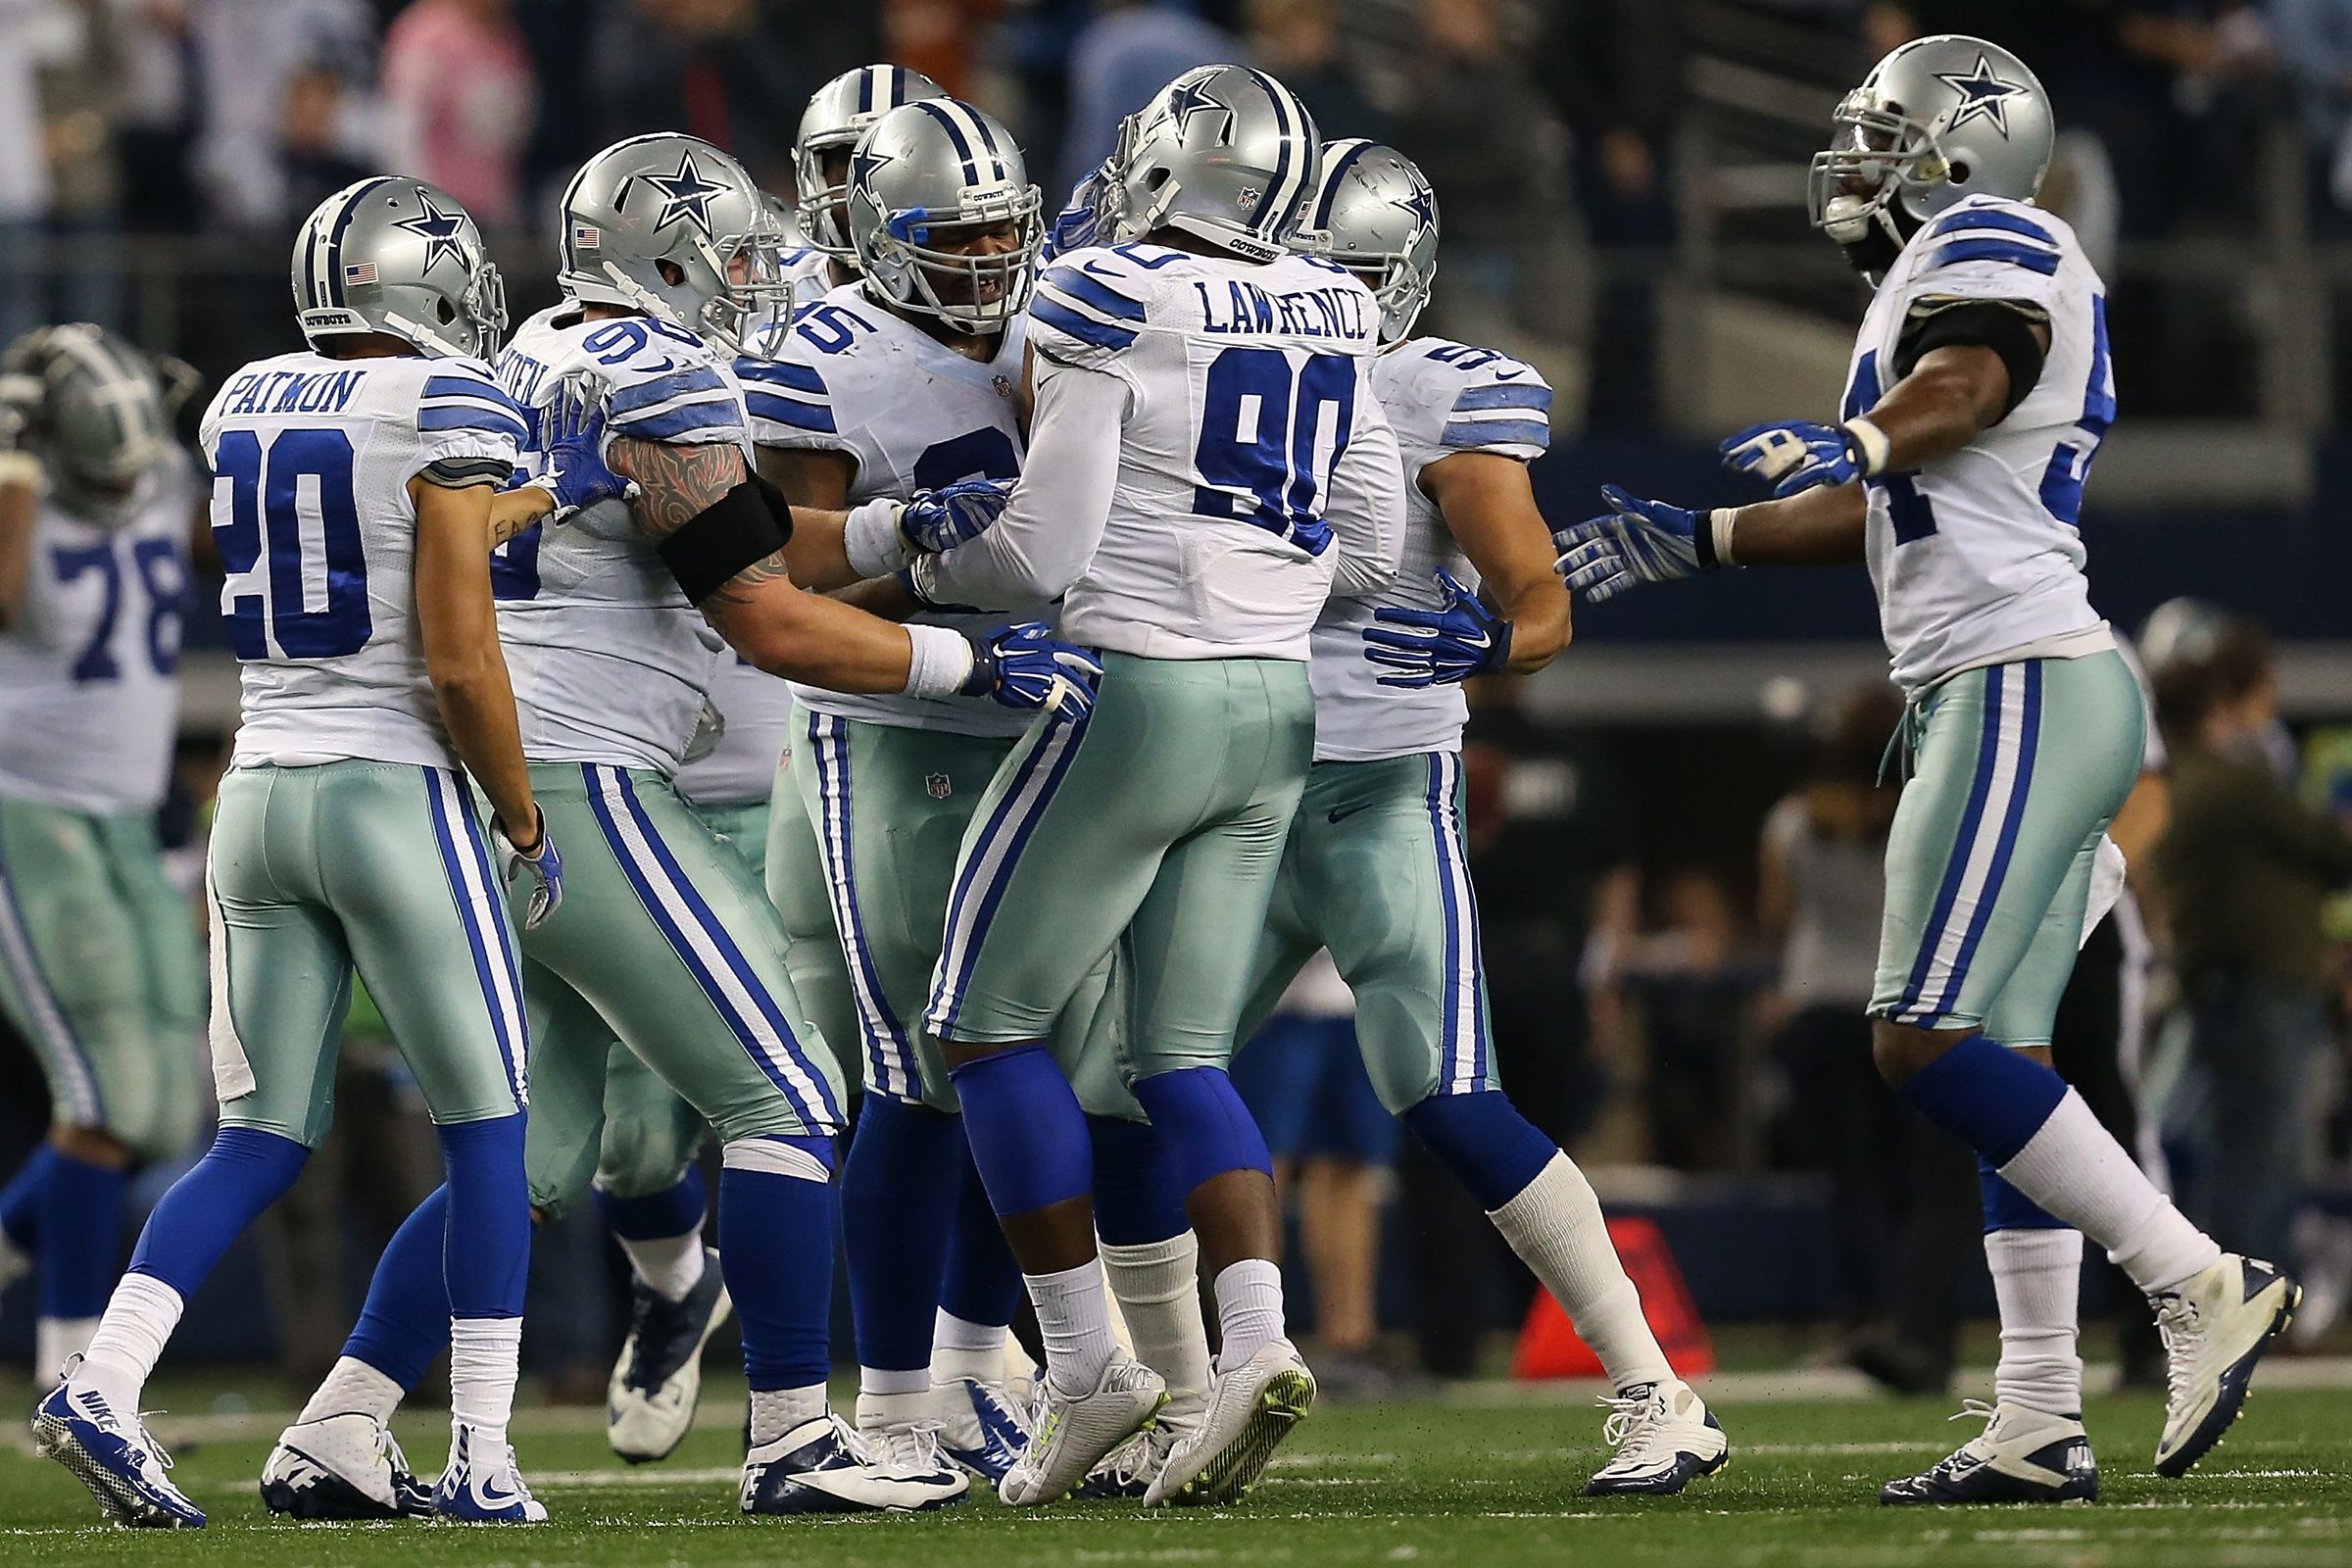 Cowboys Blog - The Defensive Line is in Worse Shape Than I Thought